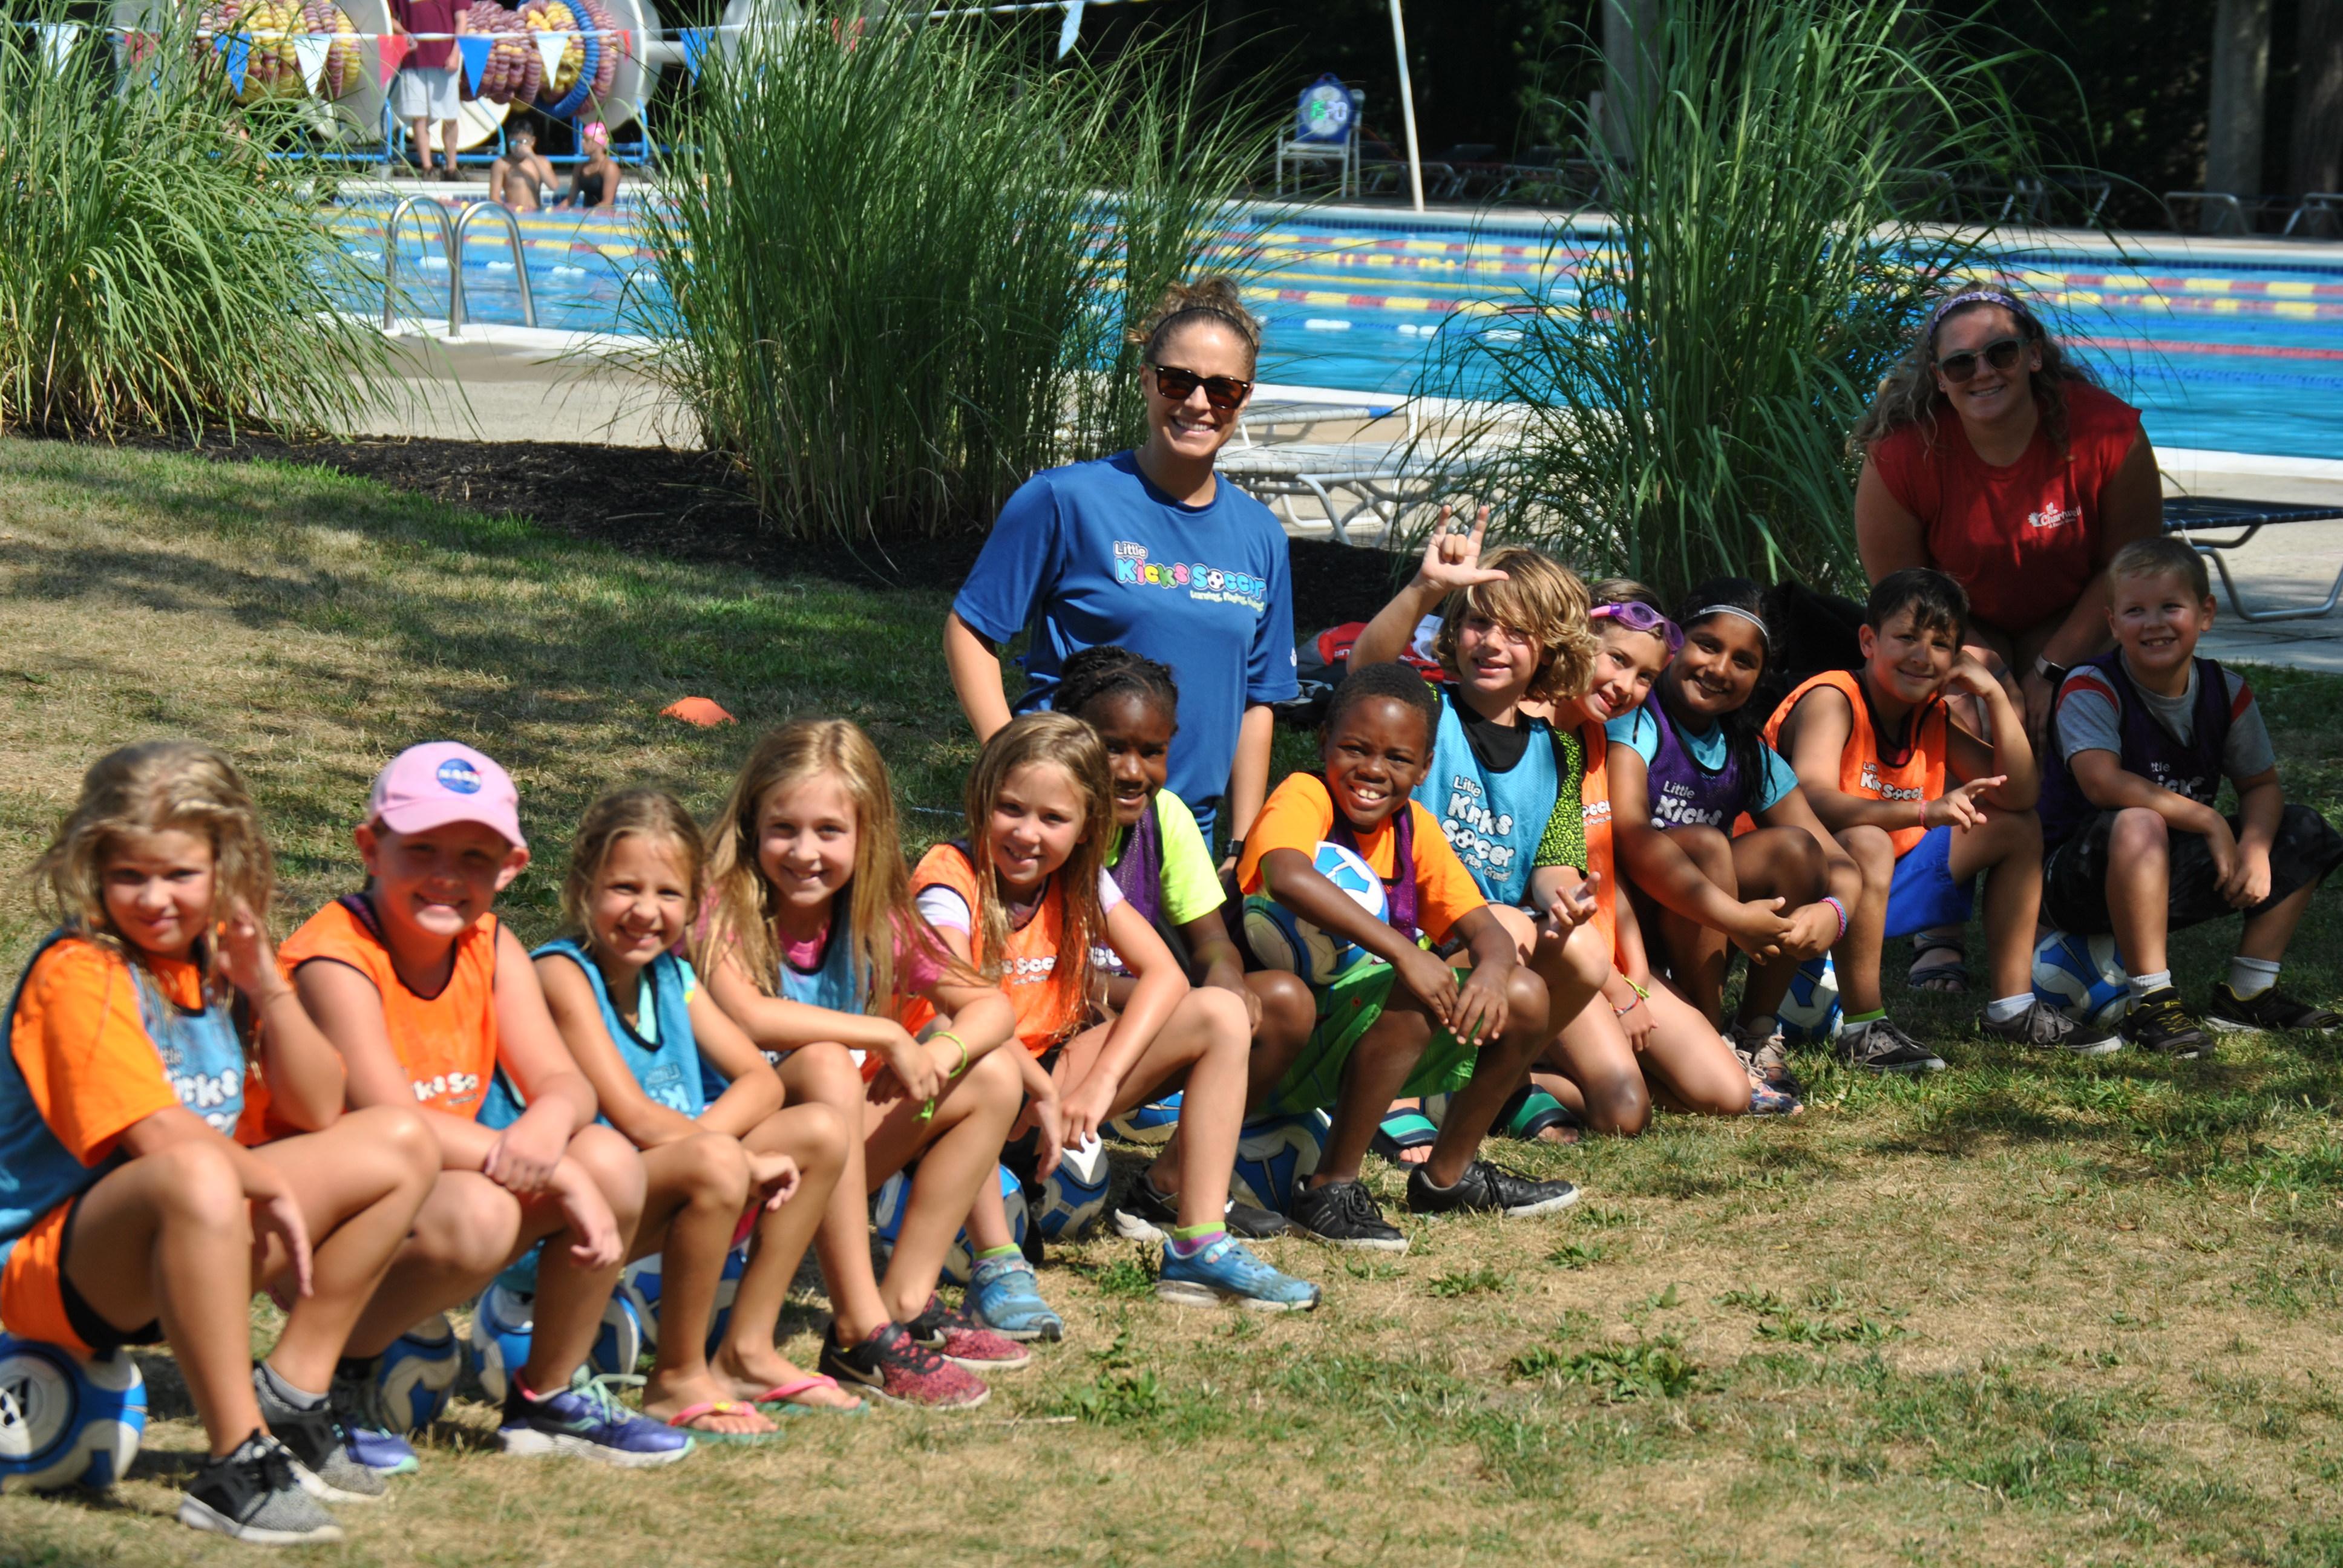 Chartwell's Happy Day Camp Marlton image 32